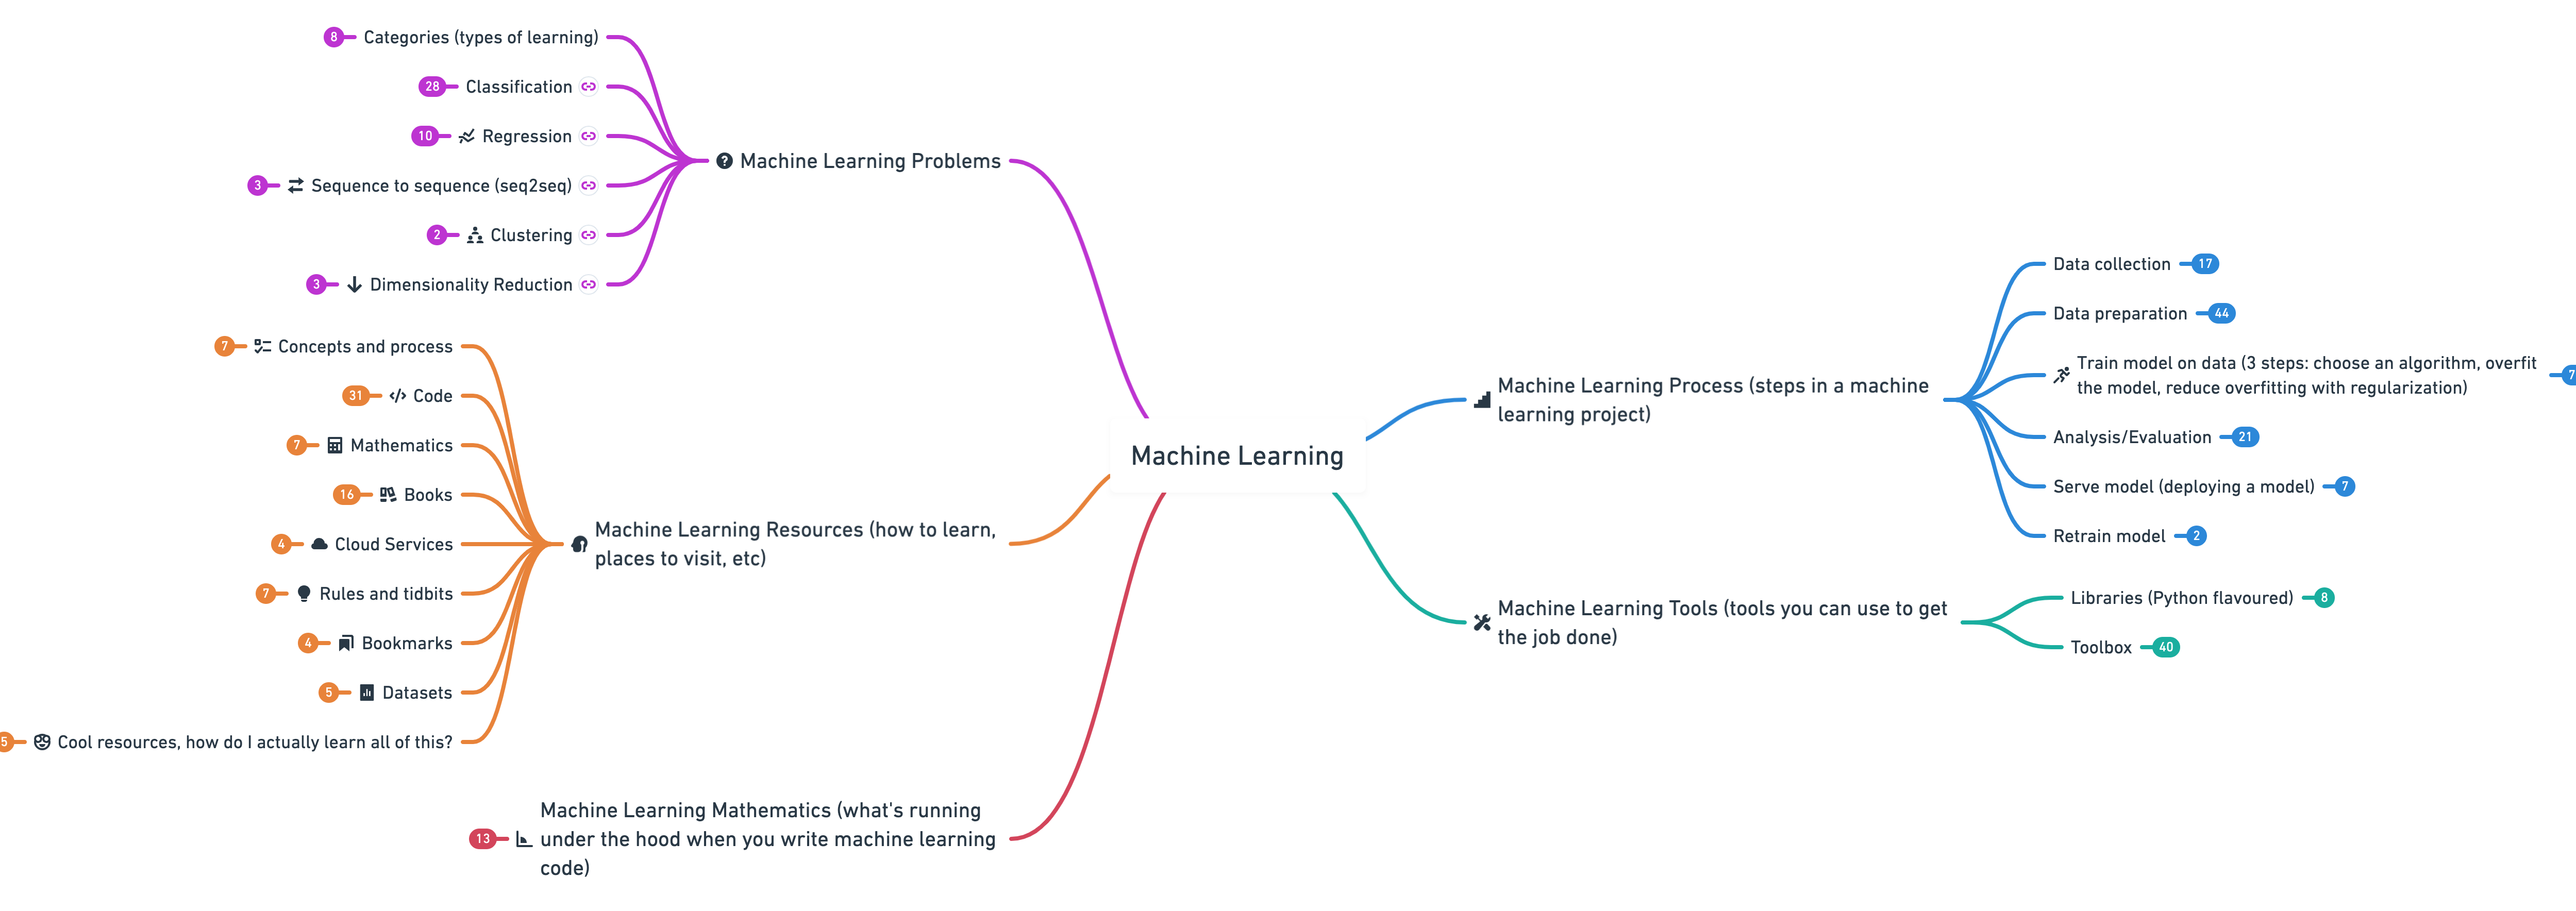 2020 machine learning roadmap overview